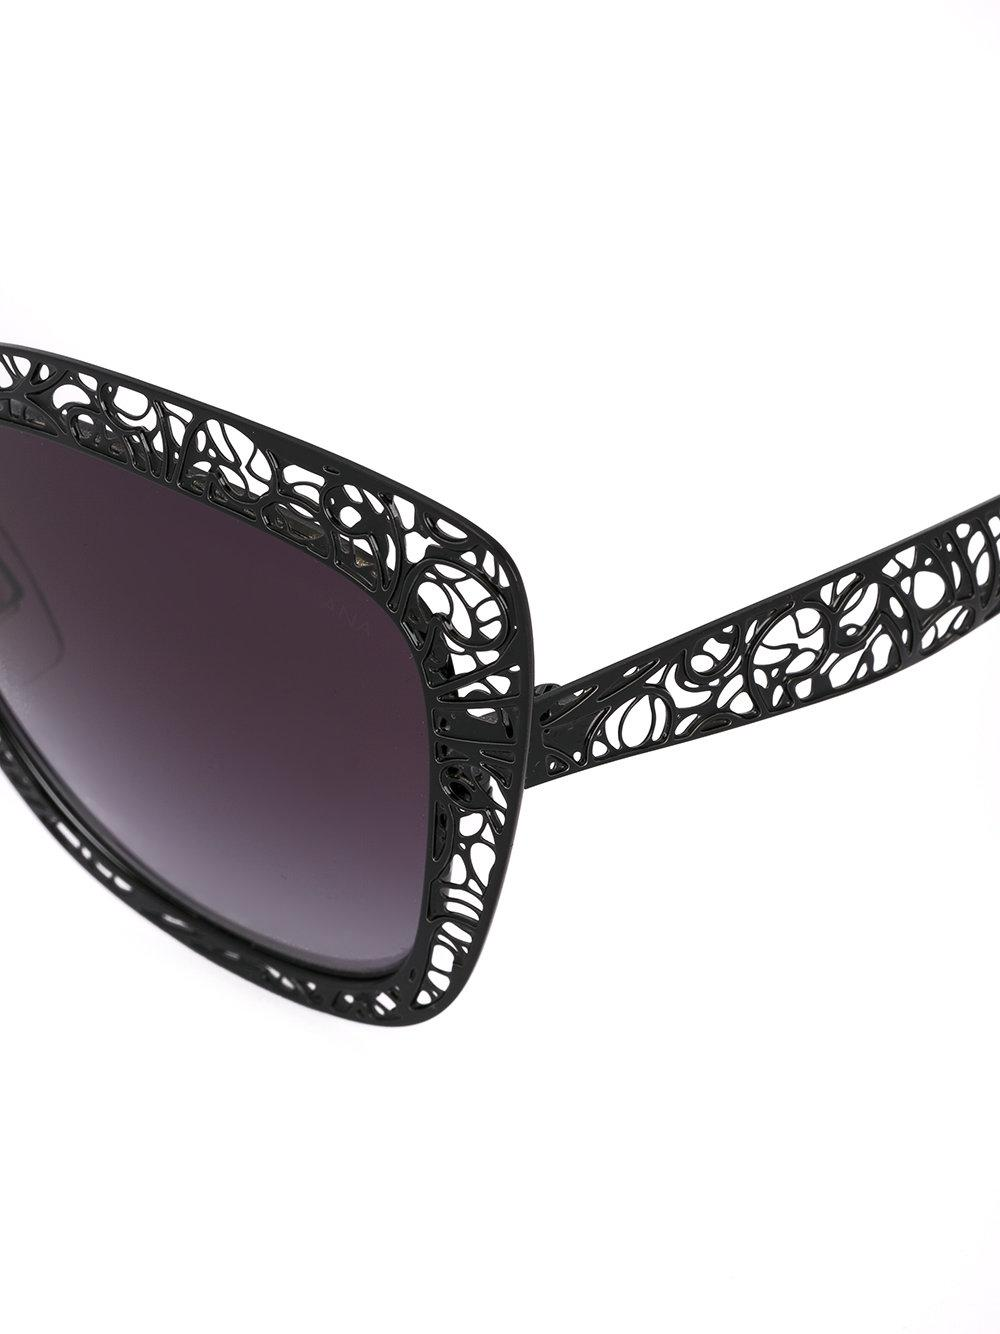 Dolce & Gabbana Lace Sunglasses in Black